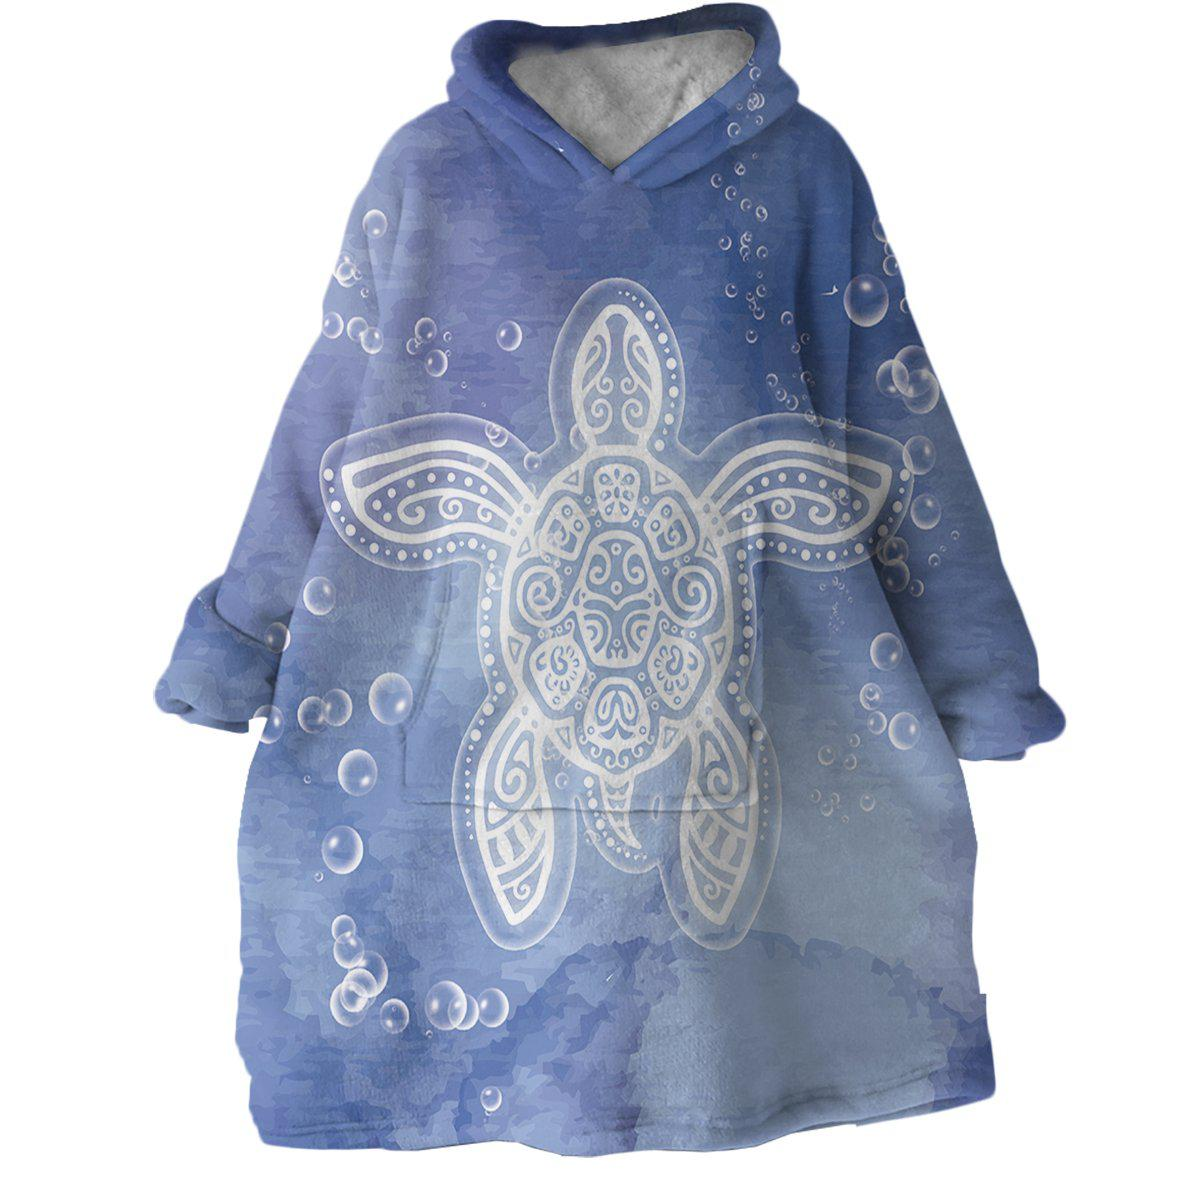 Honu Healing Wearable Blanket Hoodie-Coastal Passion